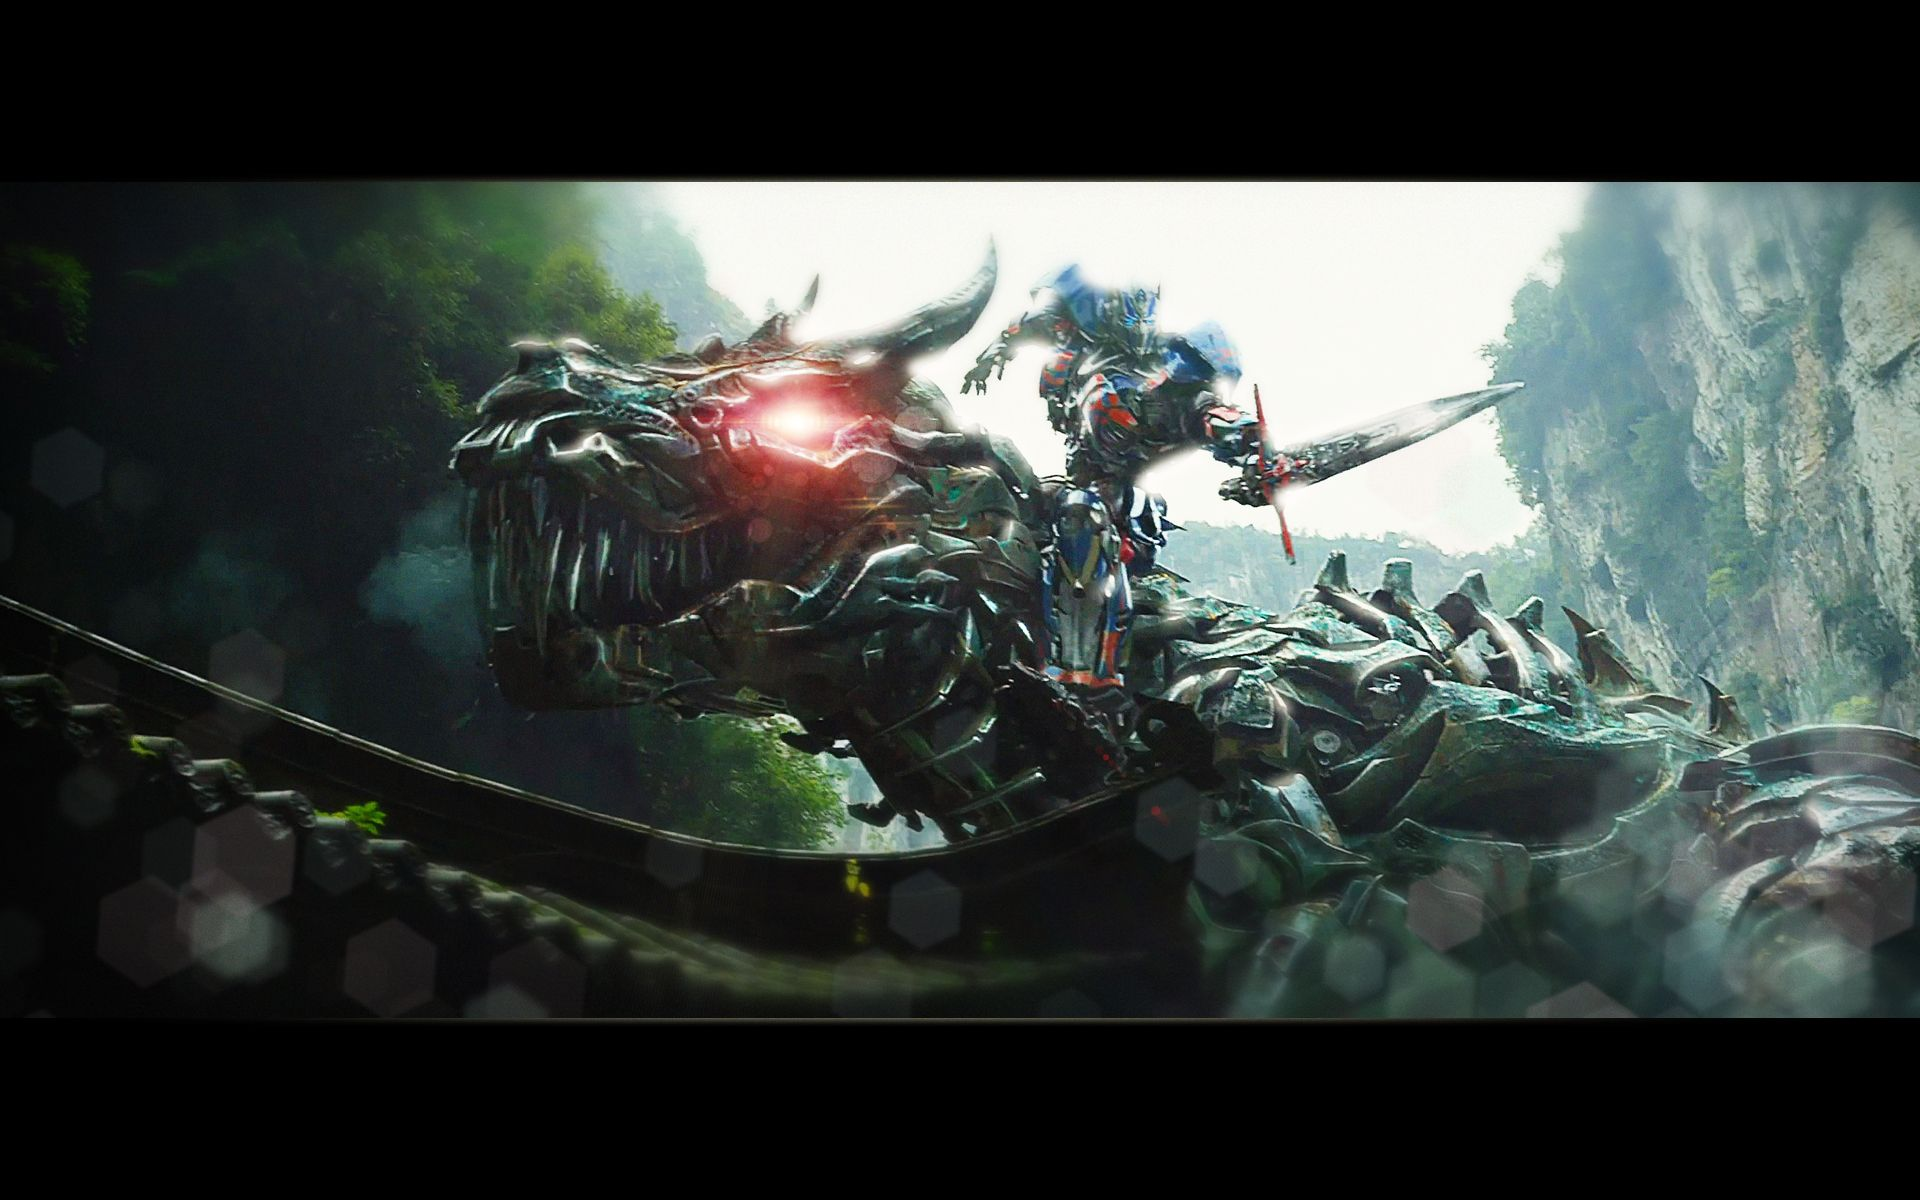 Transformers 4 grimlock custom wallpaper oscars board - Transformers tapete ...